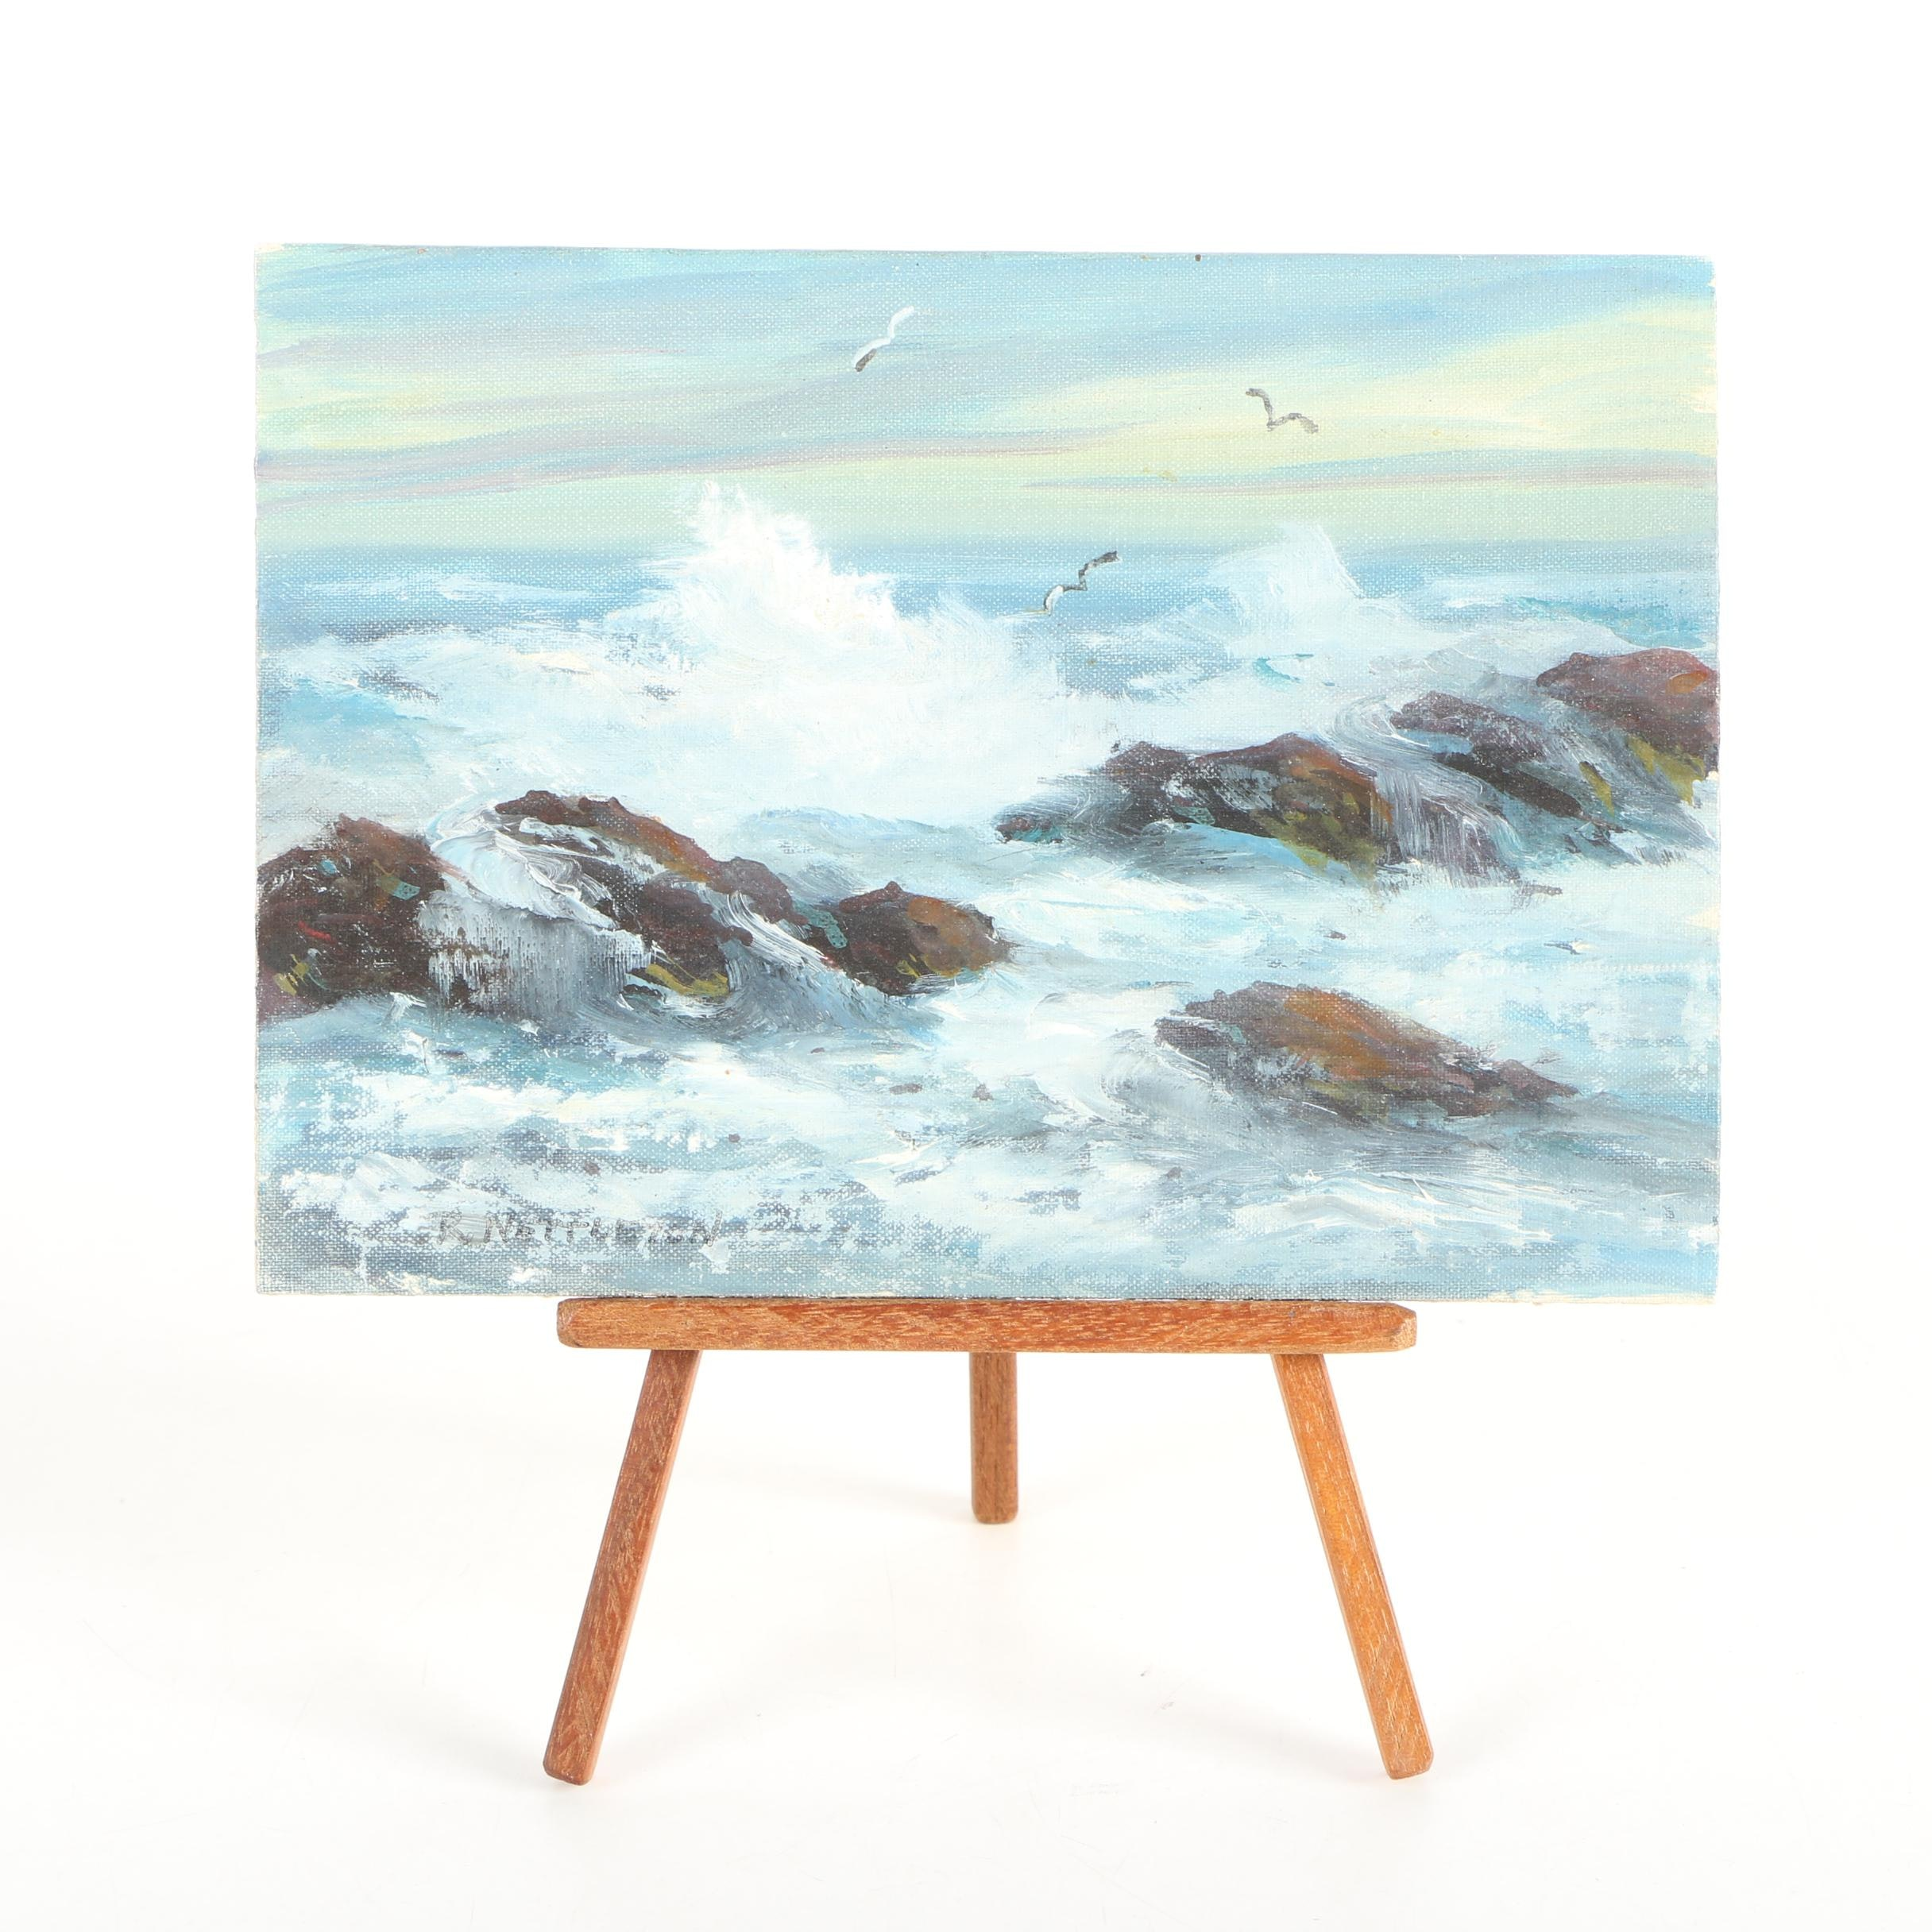 "Ruth Nettleton Signed Miniature Oil on Board Painting ""Surf"" with Easel"